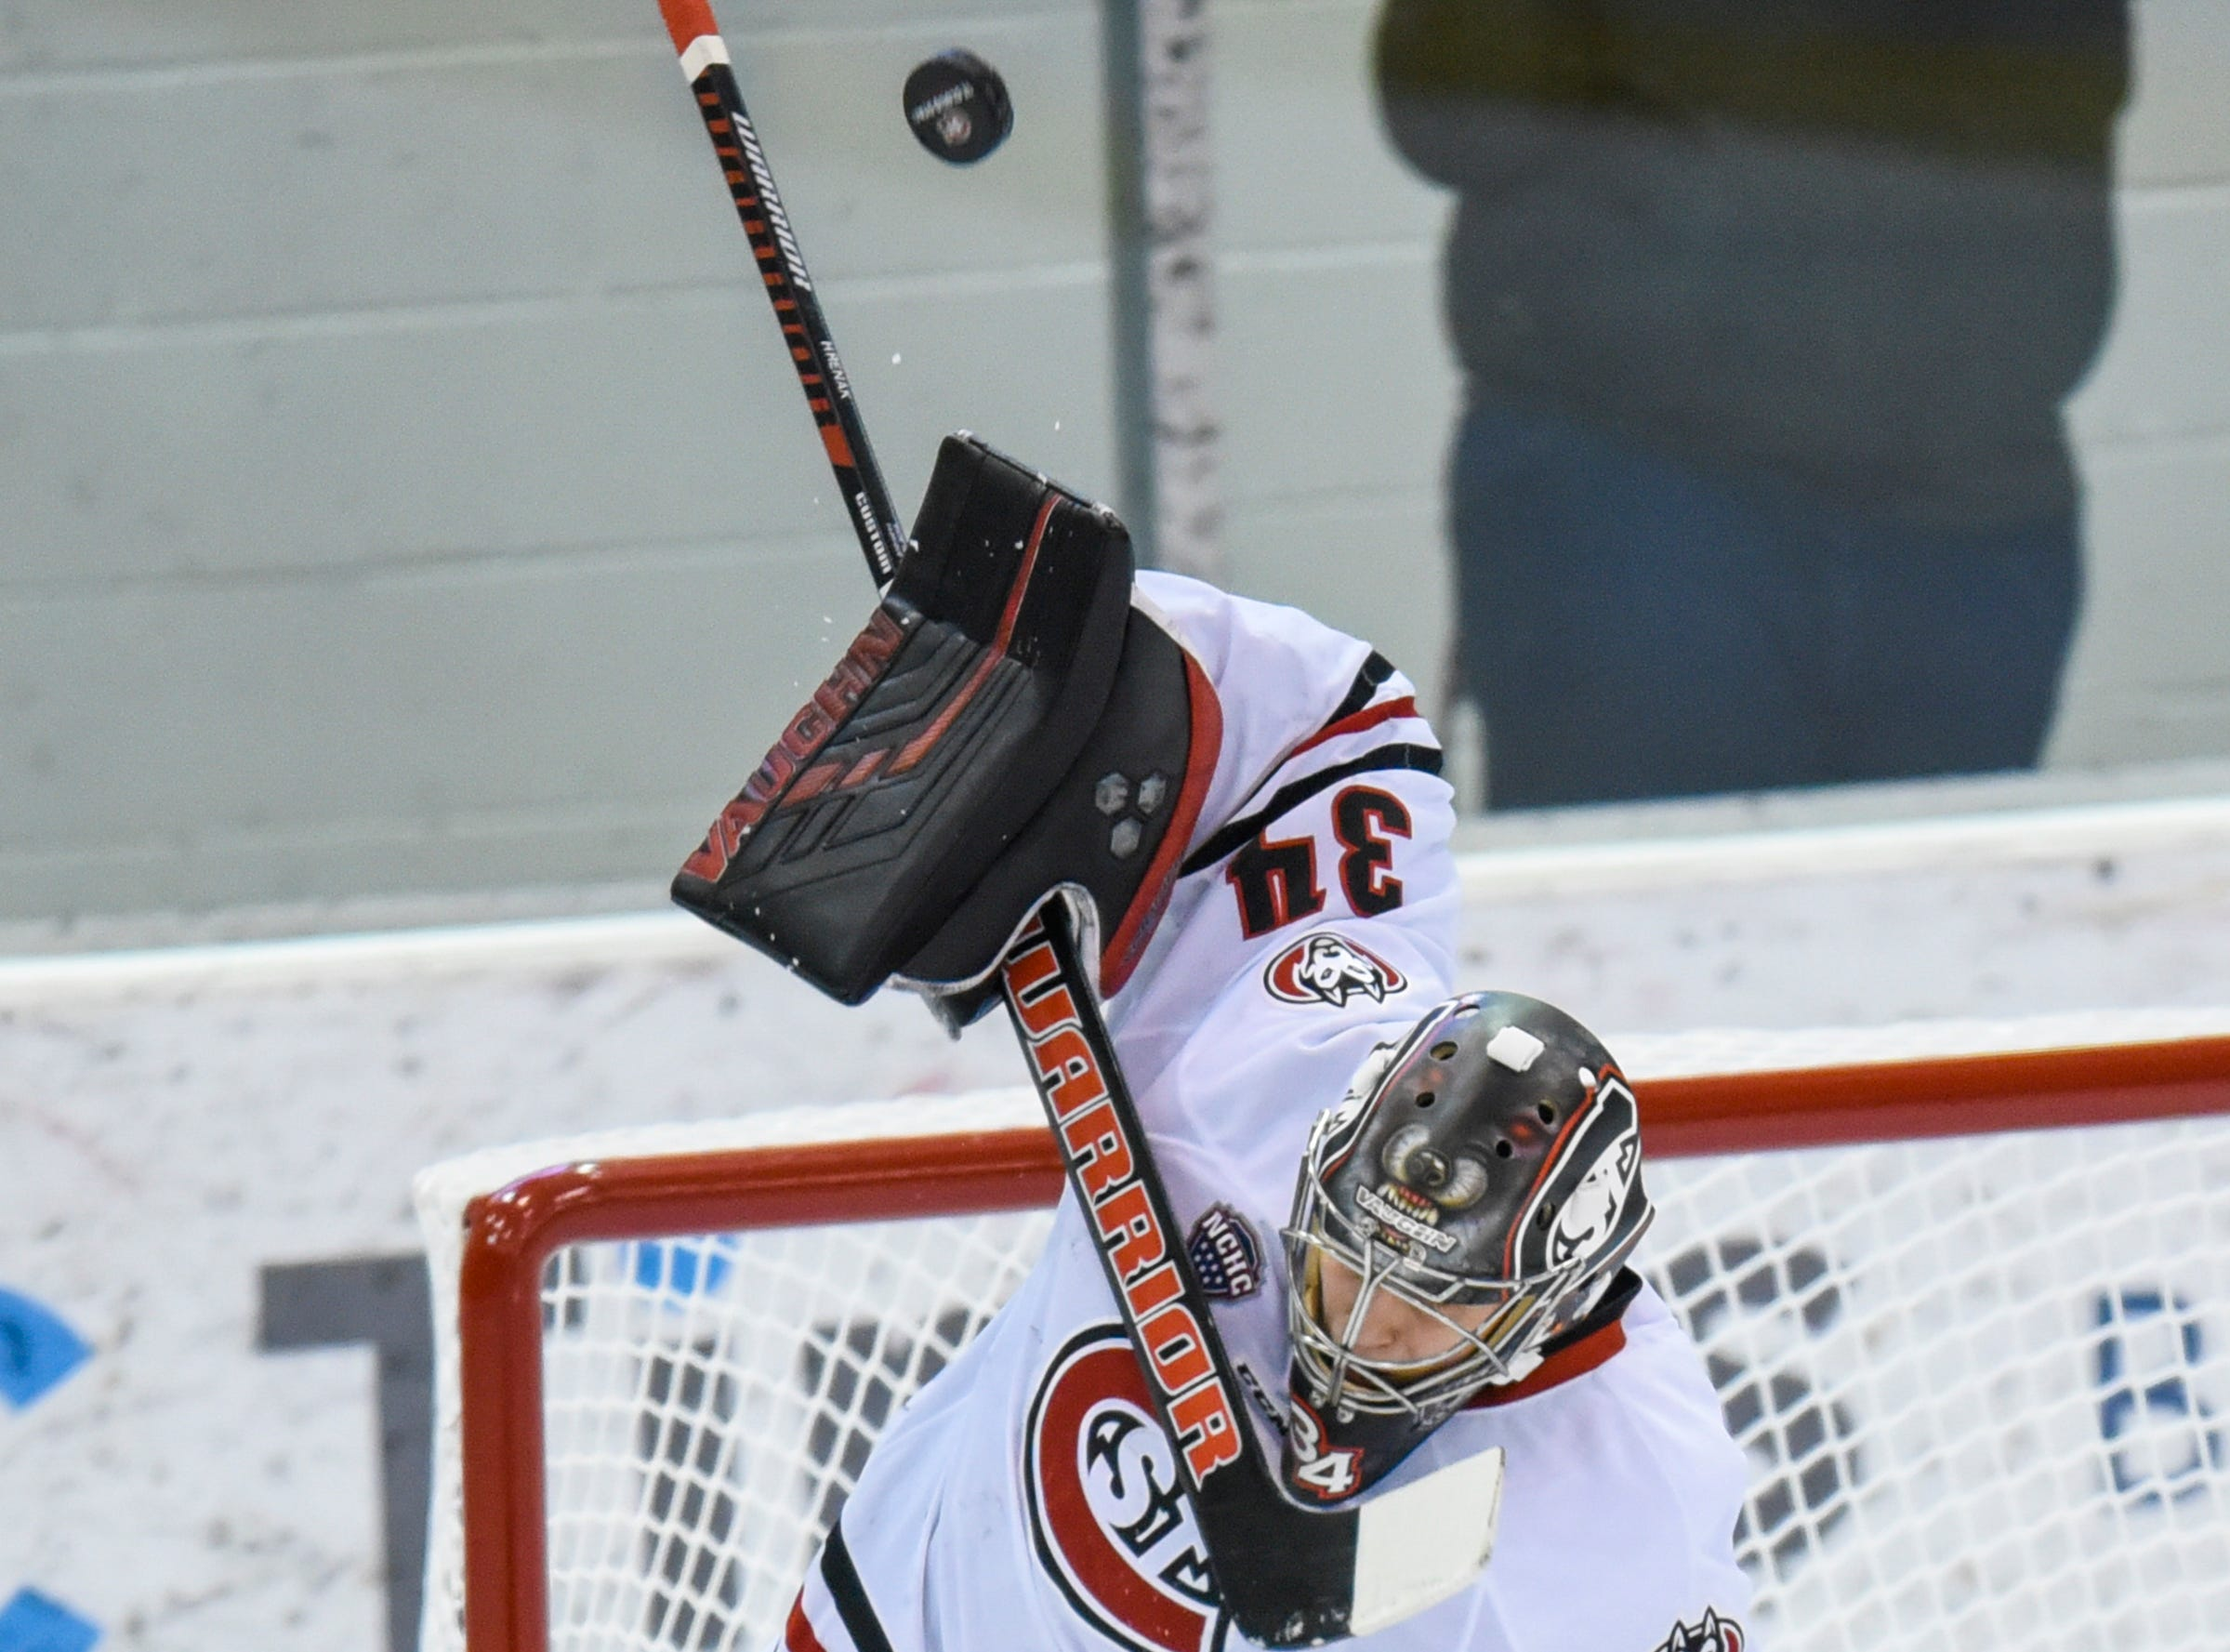 St. Cloud State goaltender David Hrenak makes a save during the first period of the Saturday, Feb. 9, game at the Herb Brooks National Hockey Center in St. Cloud.